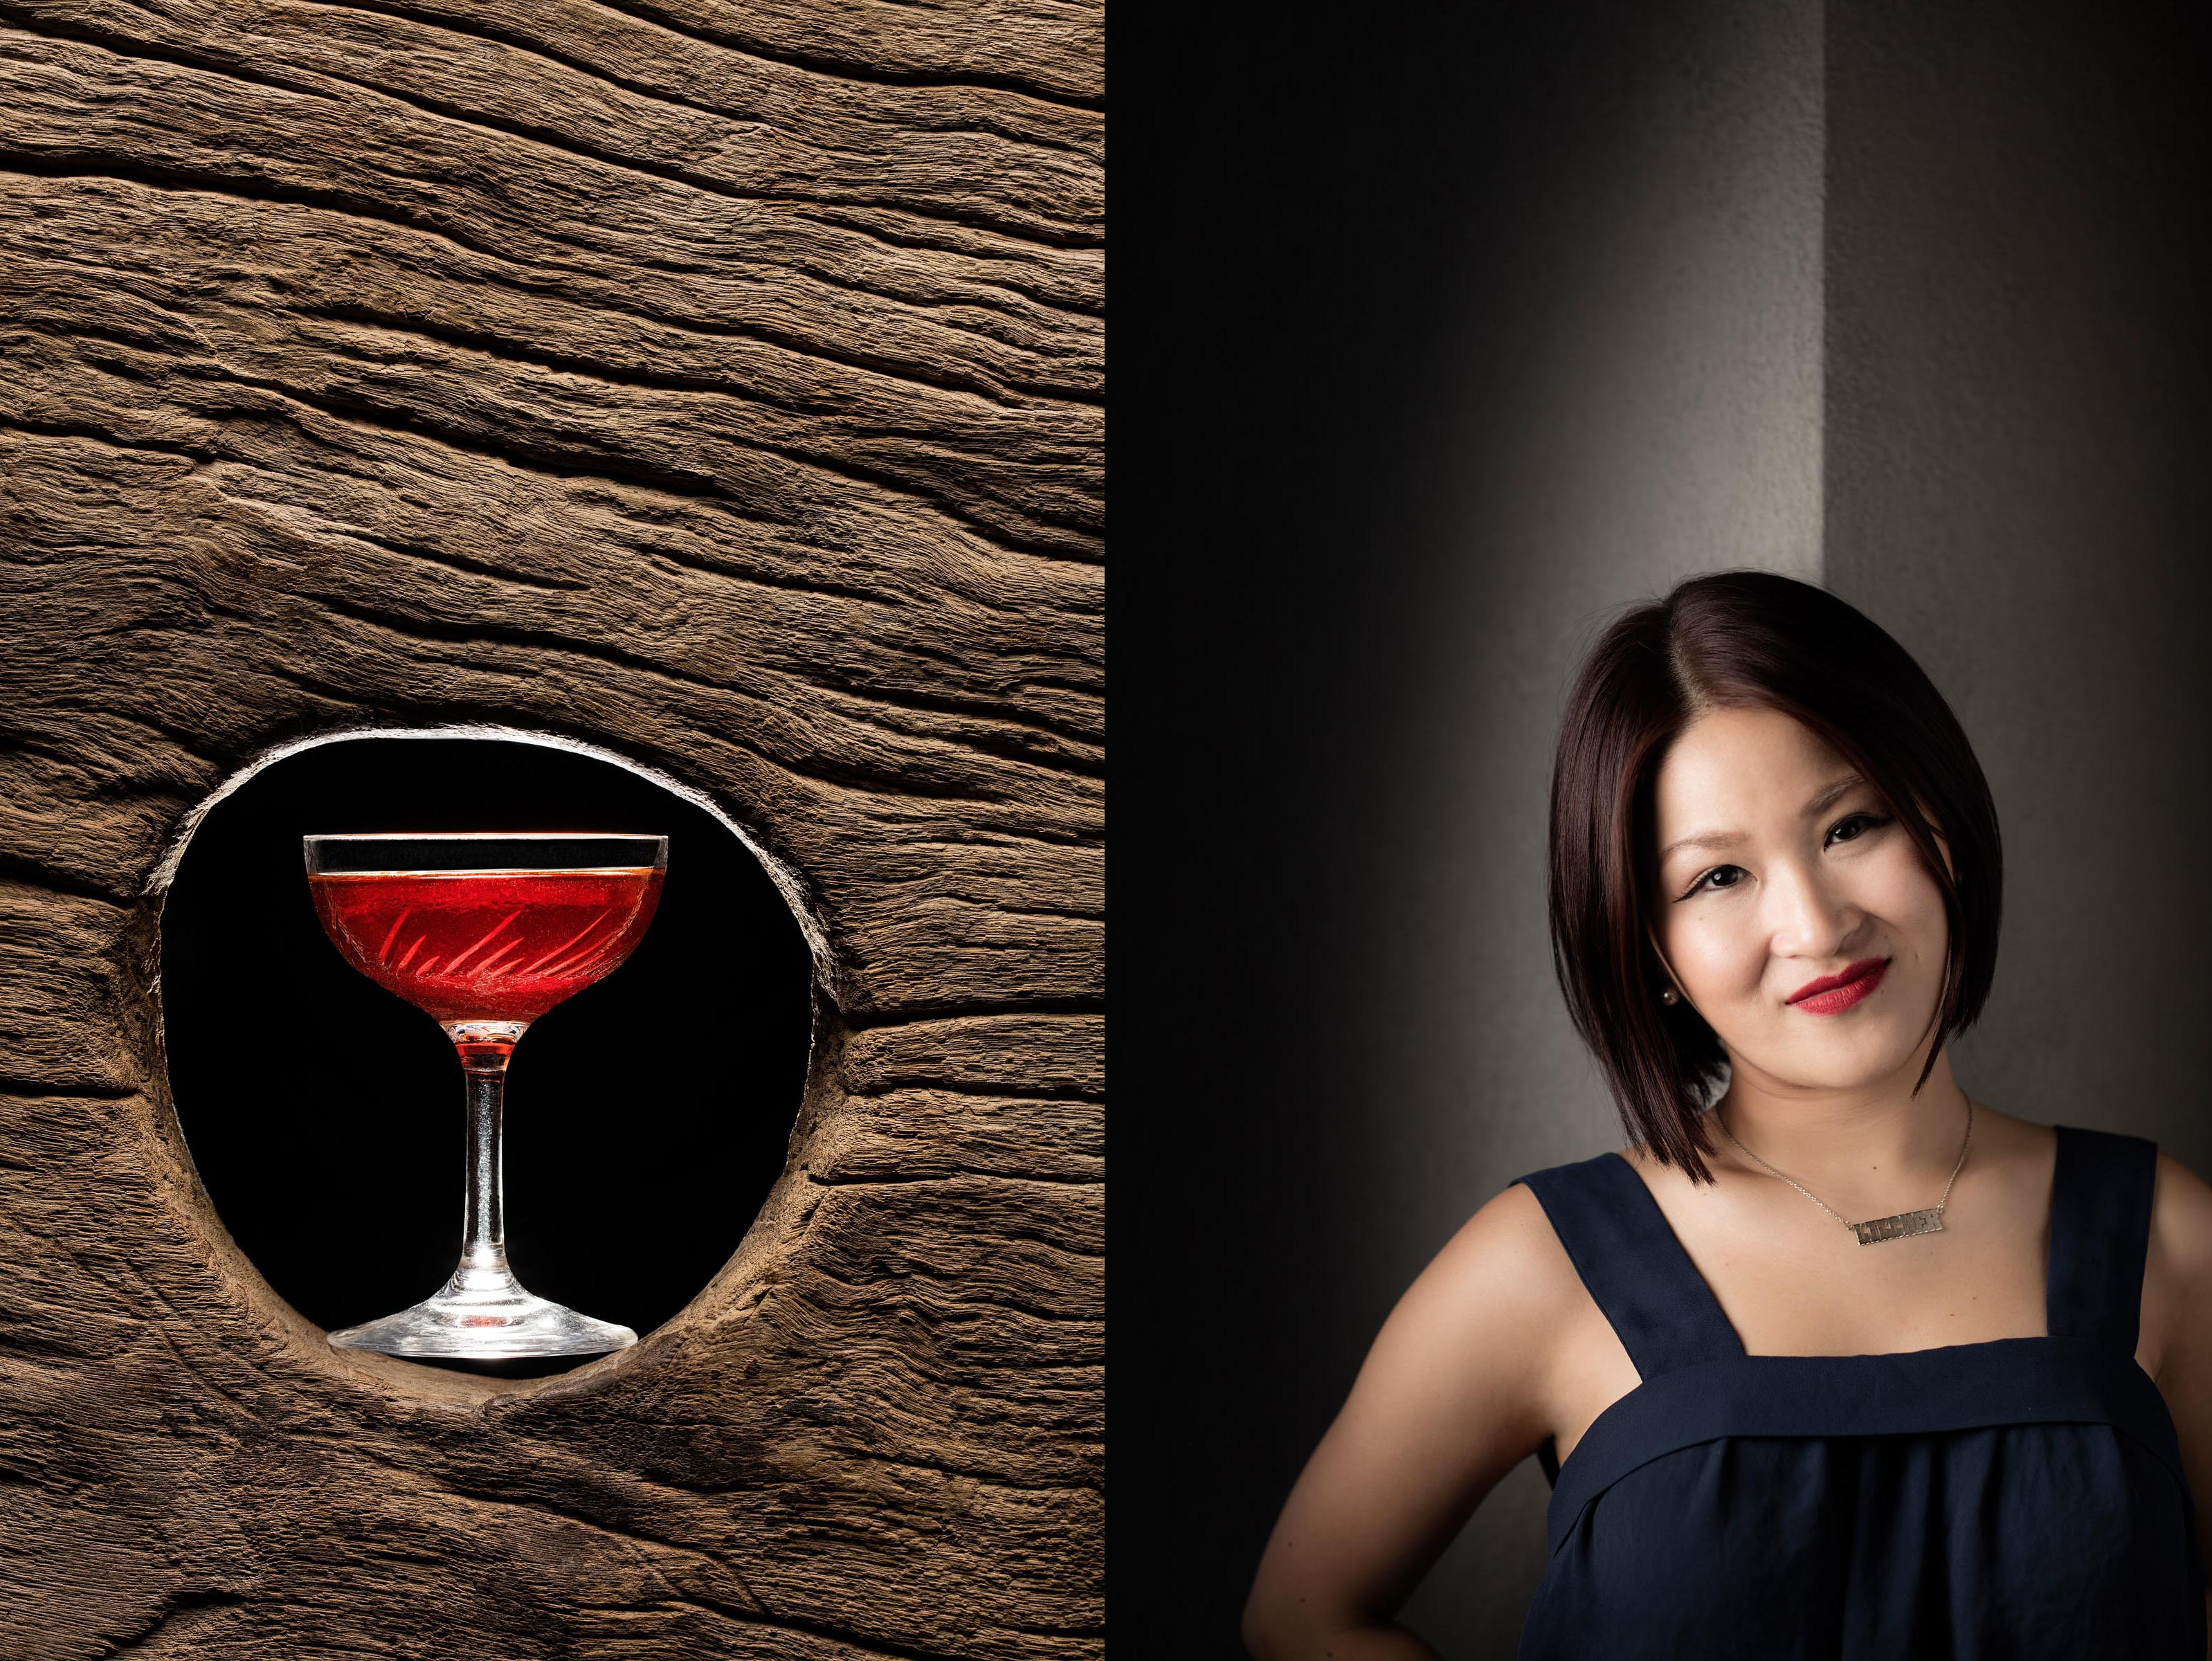 Cherry Lam is the Brand Manager for the Diageo Portfolio.